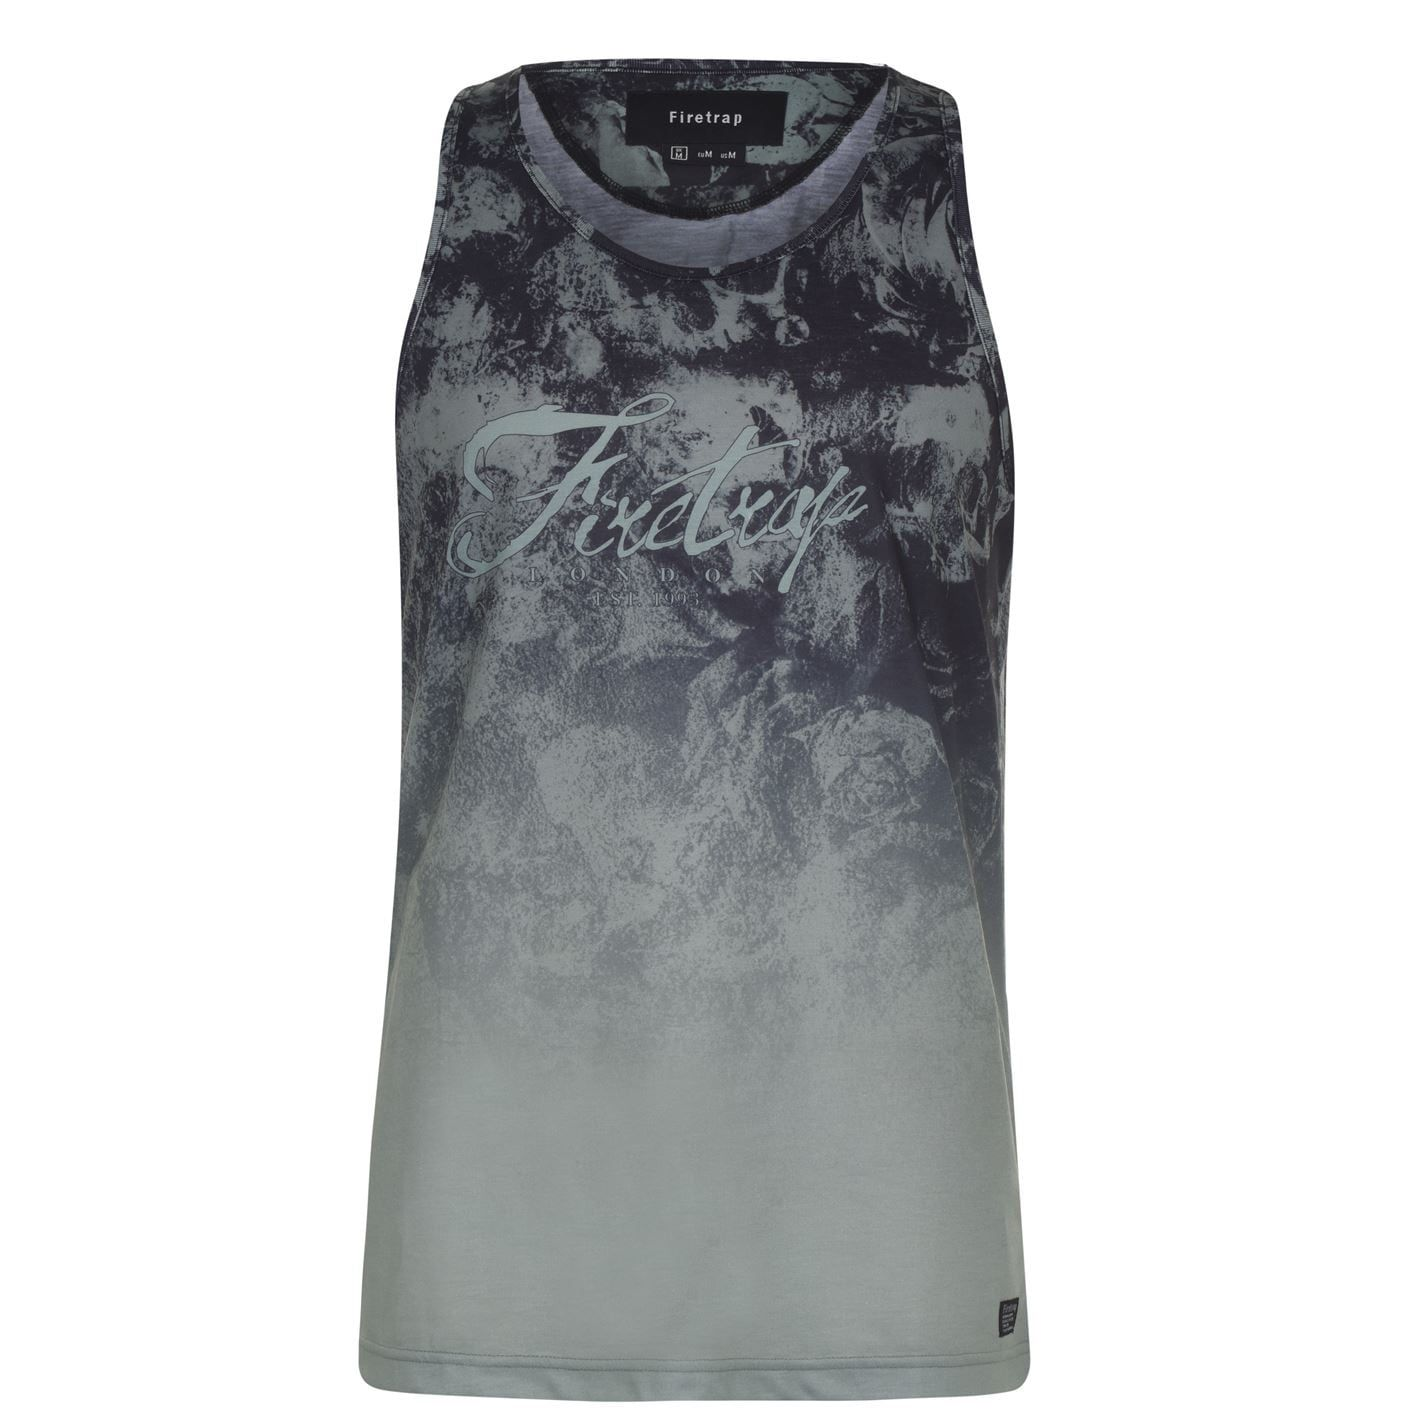 Firetrap Mens Sub Vest Gym Training Top Muscle Scoop Neck Printed Sleeveless